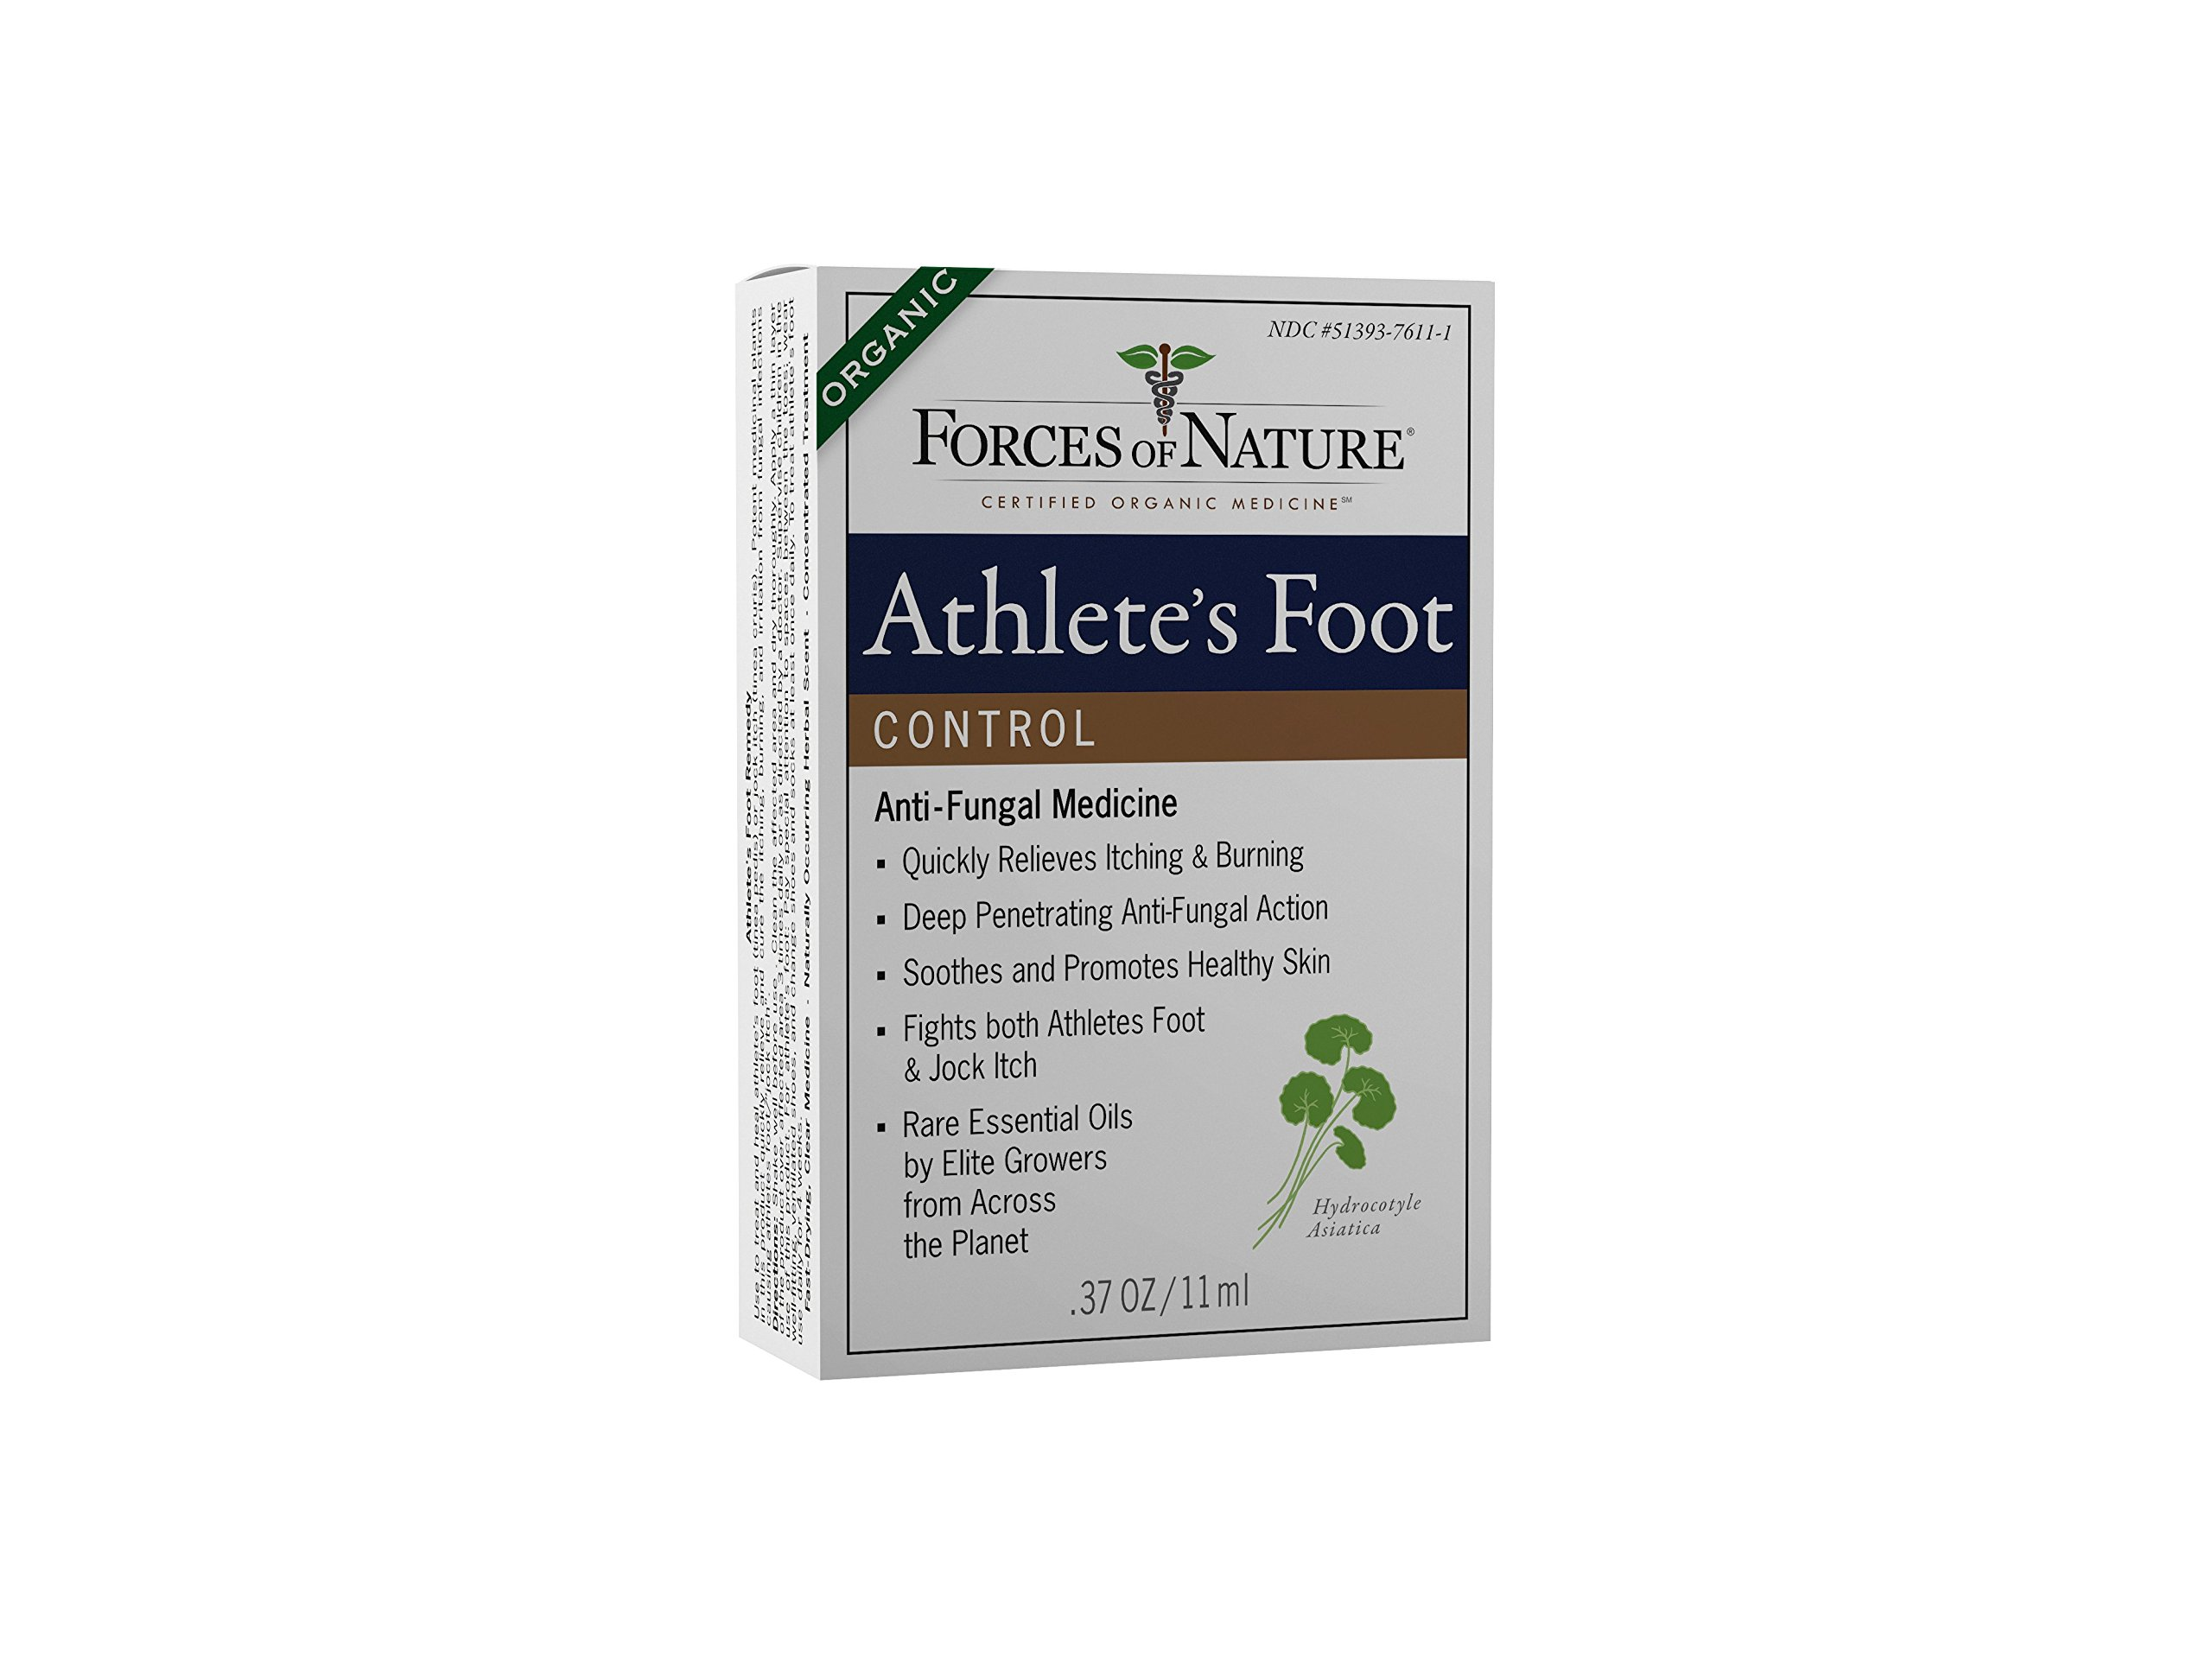 Forces of Nature | Athlete's Foot Control | Certified Organic | FDA-registered | Pharmaceutical Strength | 11ml (Pack of 1)